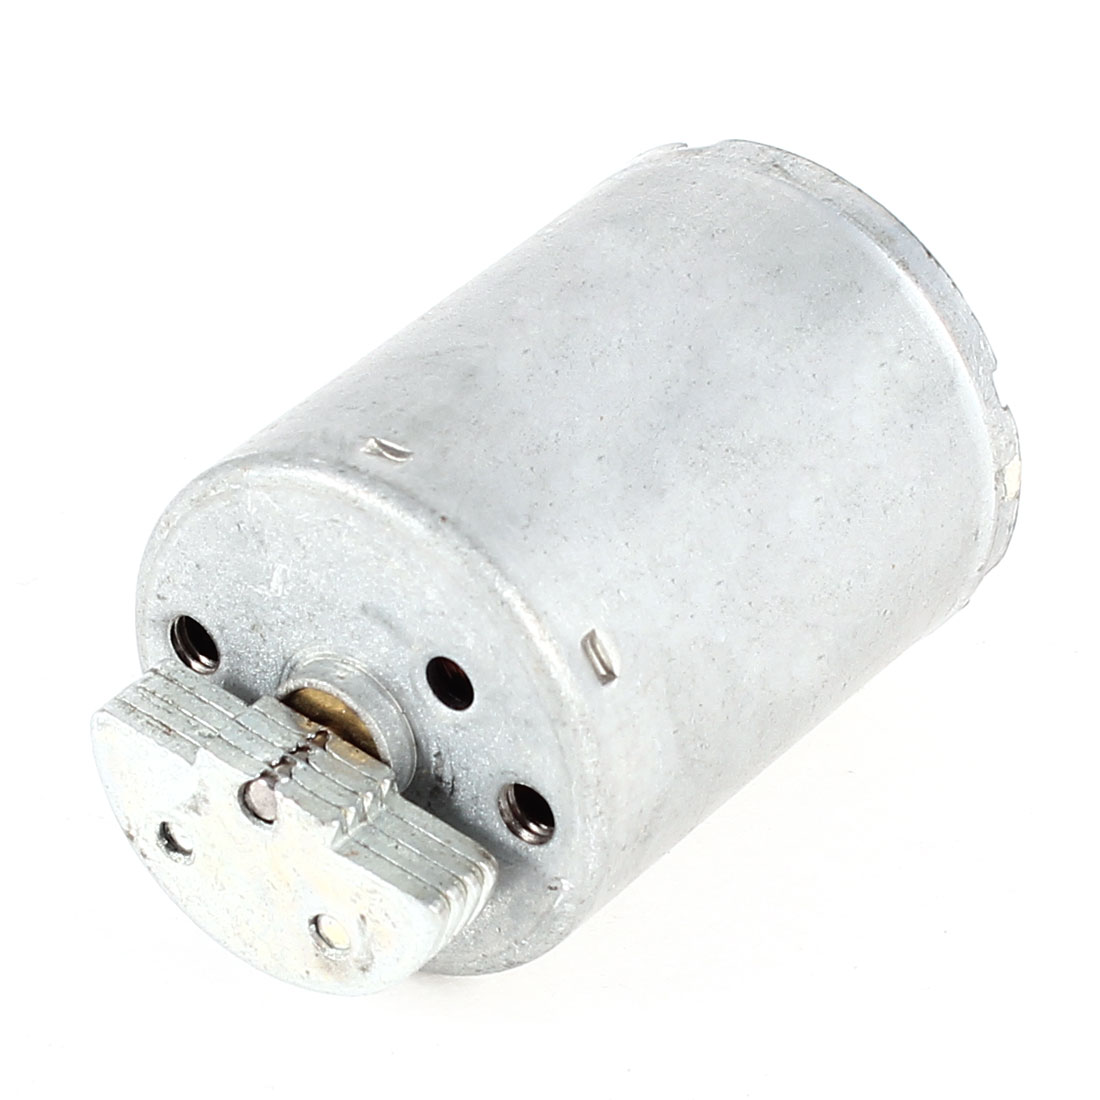 25mm-Mini-Vibration-Vibrating-Electric-Toys-Motor-DC-3-6V-5200RPM